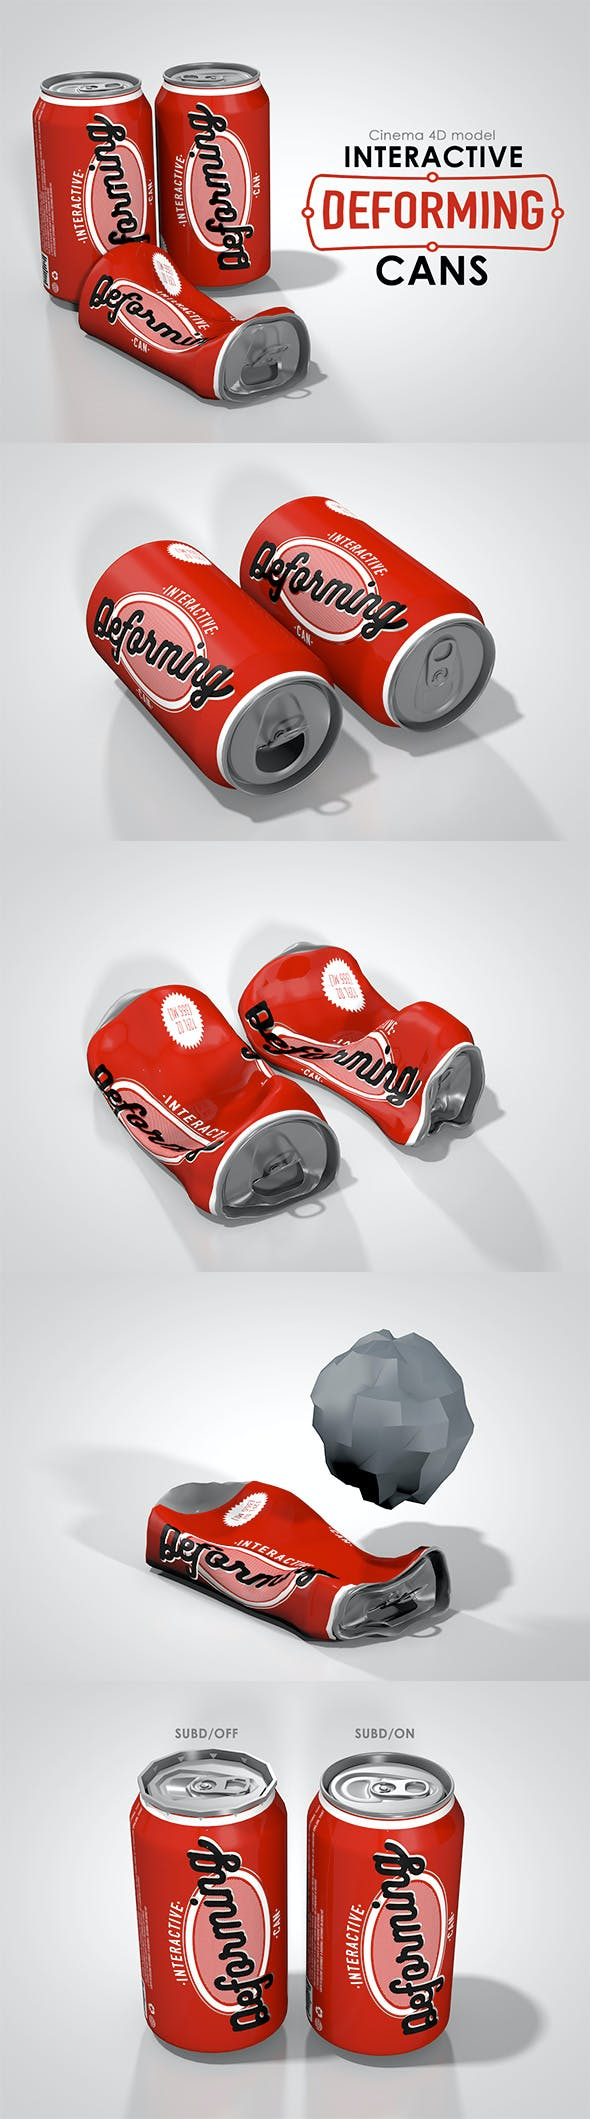 Interactive deforming cans - 3DOcean Item for Sale